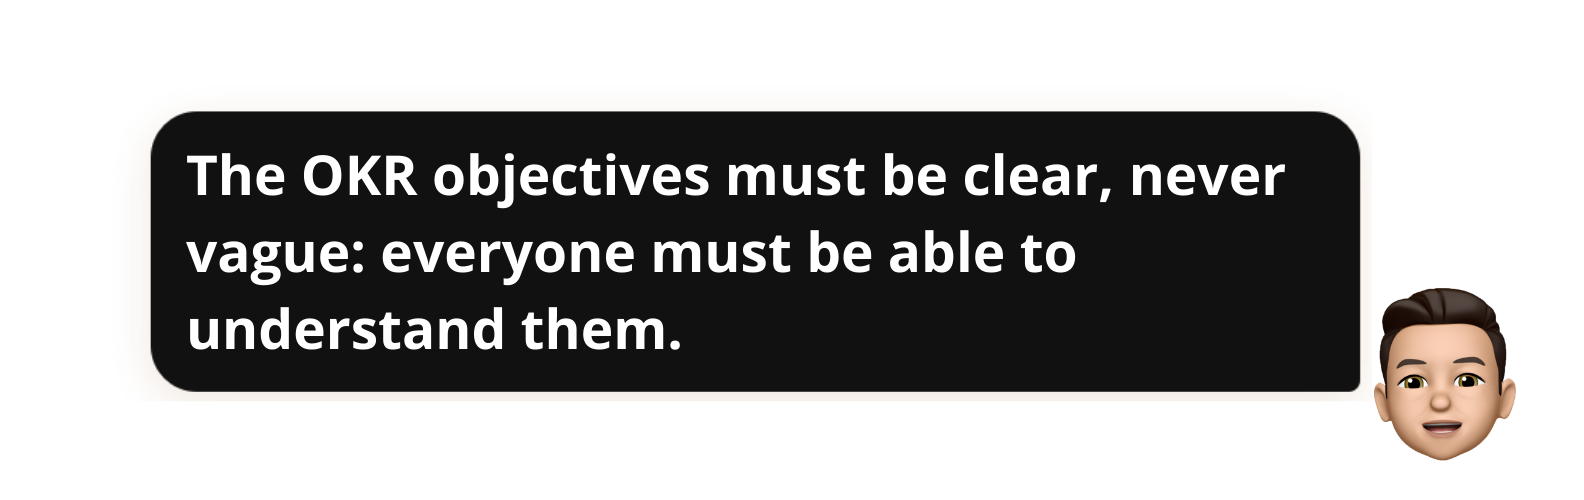 """Quenntin Demeestère memoji saying: """"The OKR objectives must be clear, never vague: everyone must be able to understand them."""" - Popwork"""